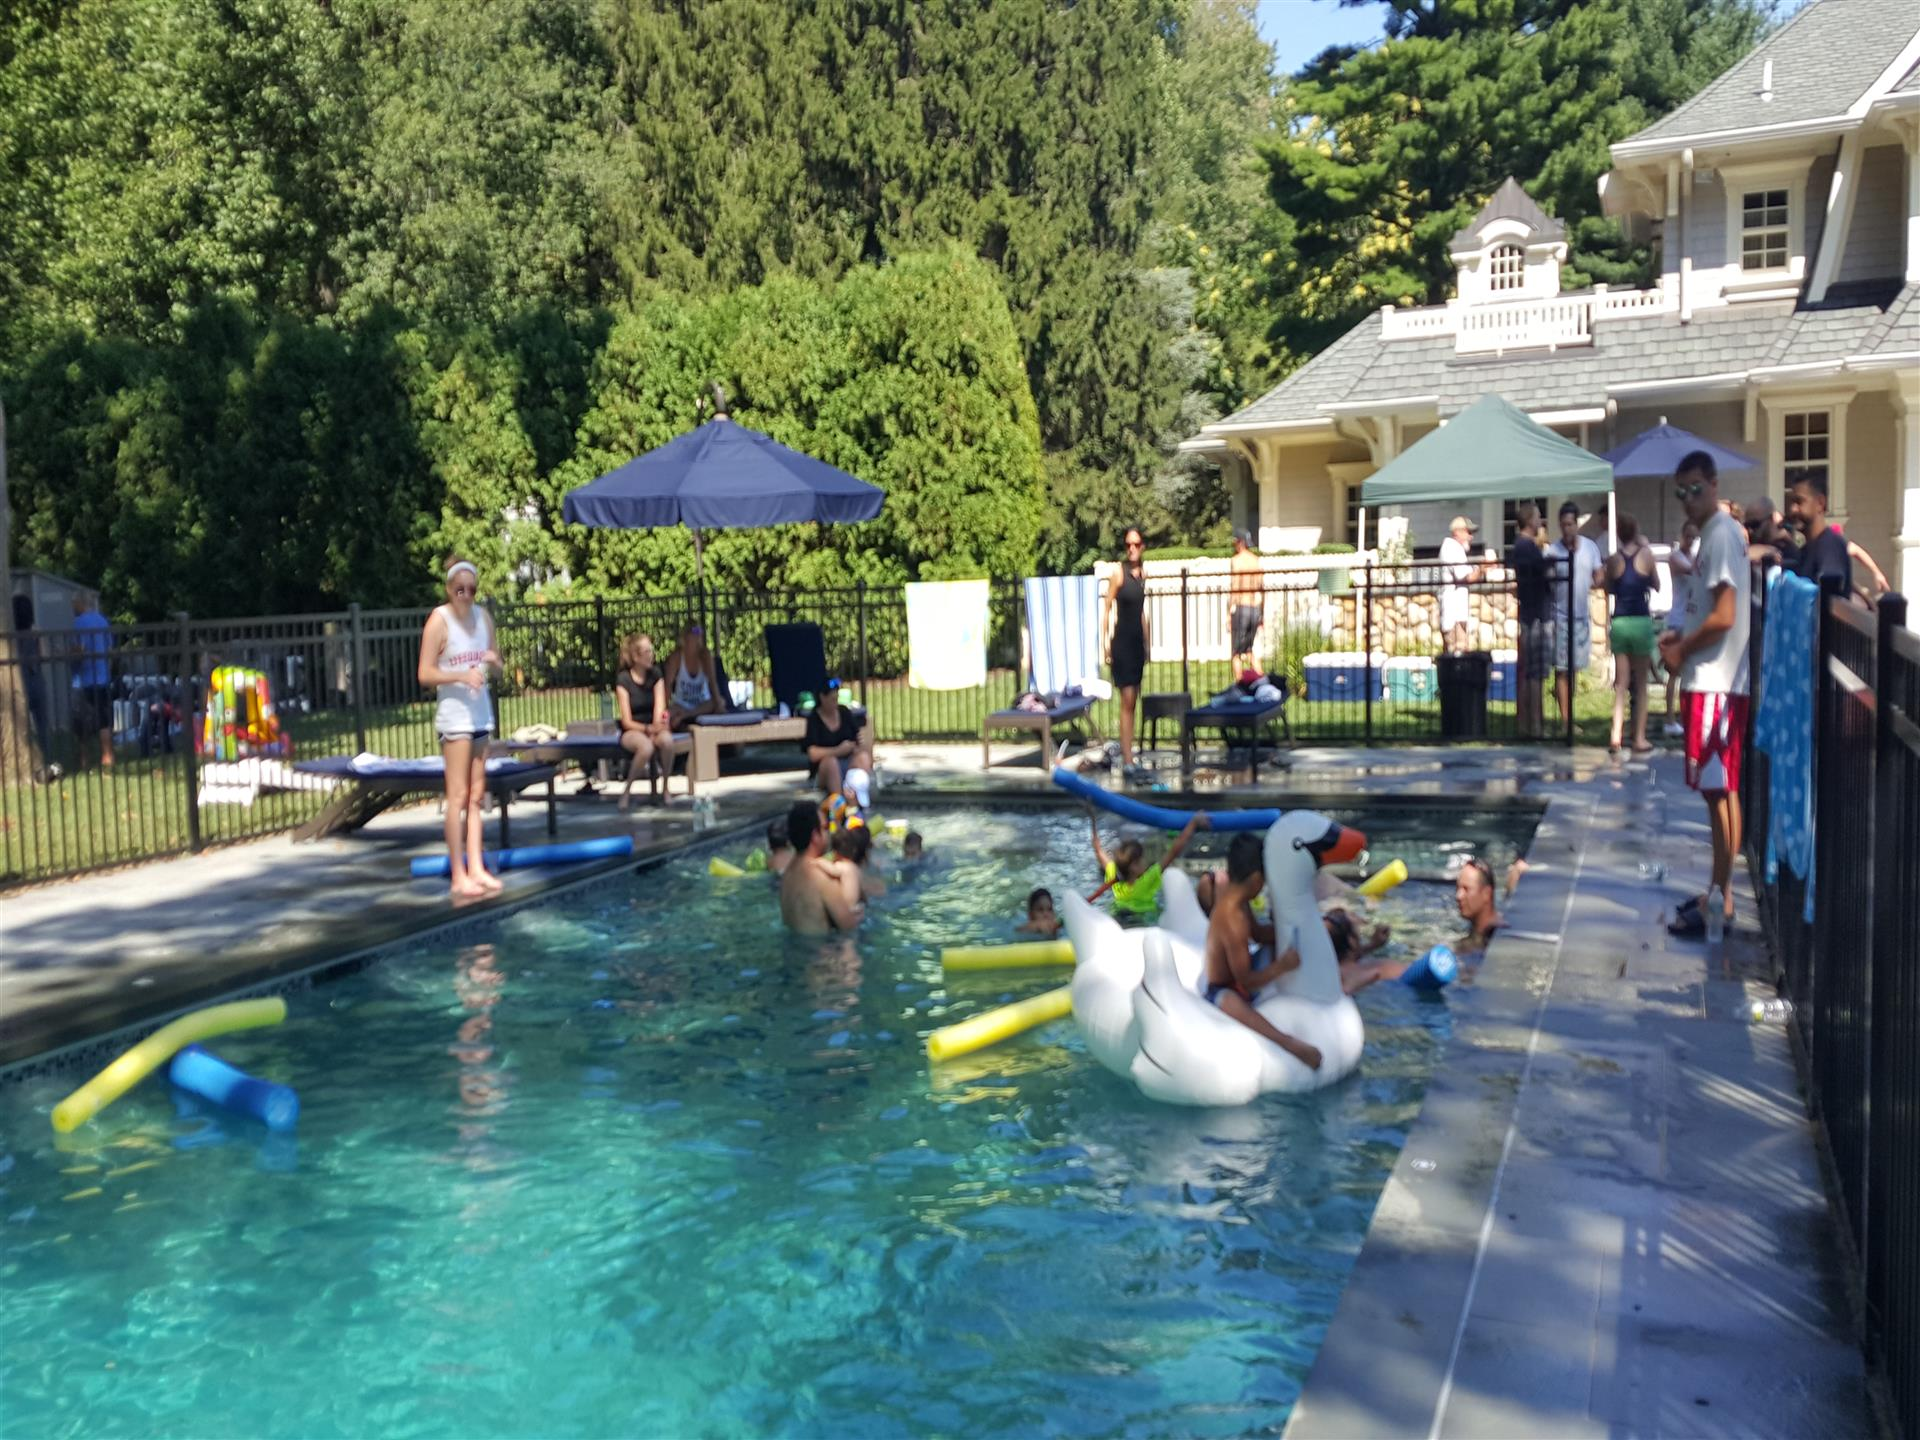 Ourdoor pool party with children